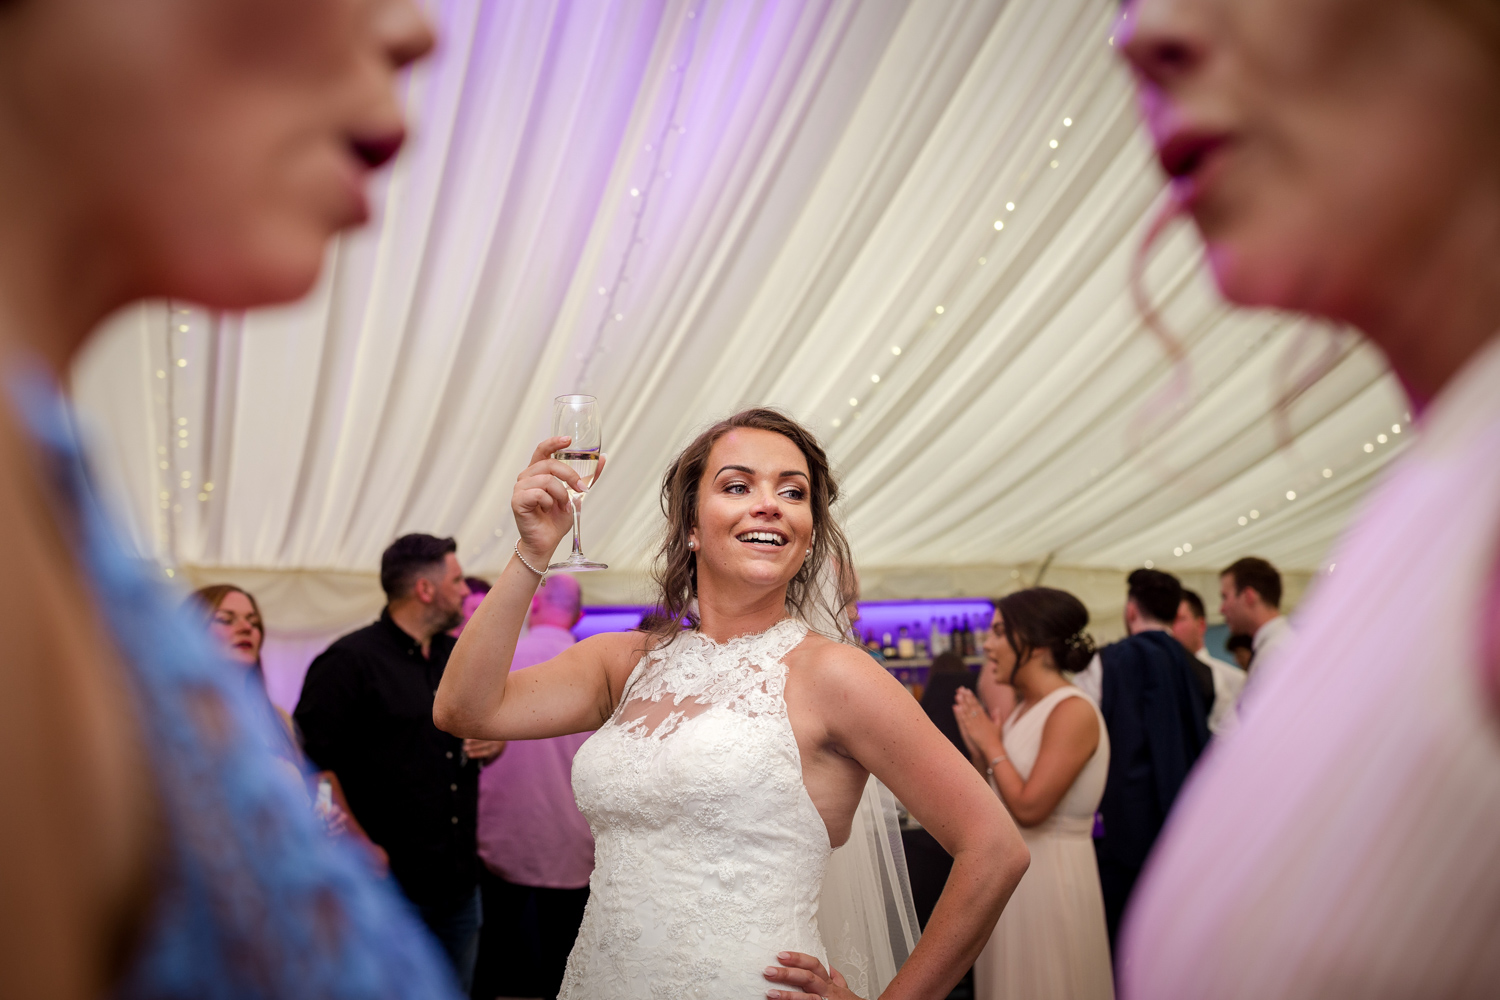 Guests on the dance floor at a Nunsmere Hall Wedding Reception